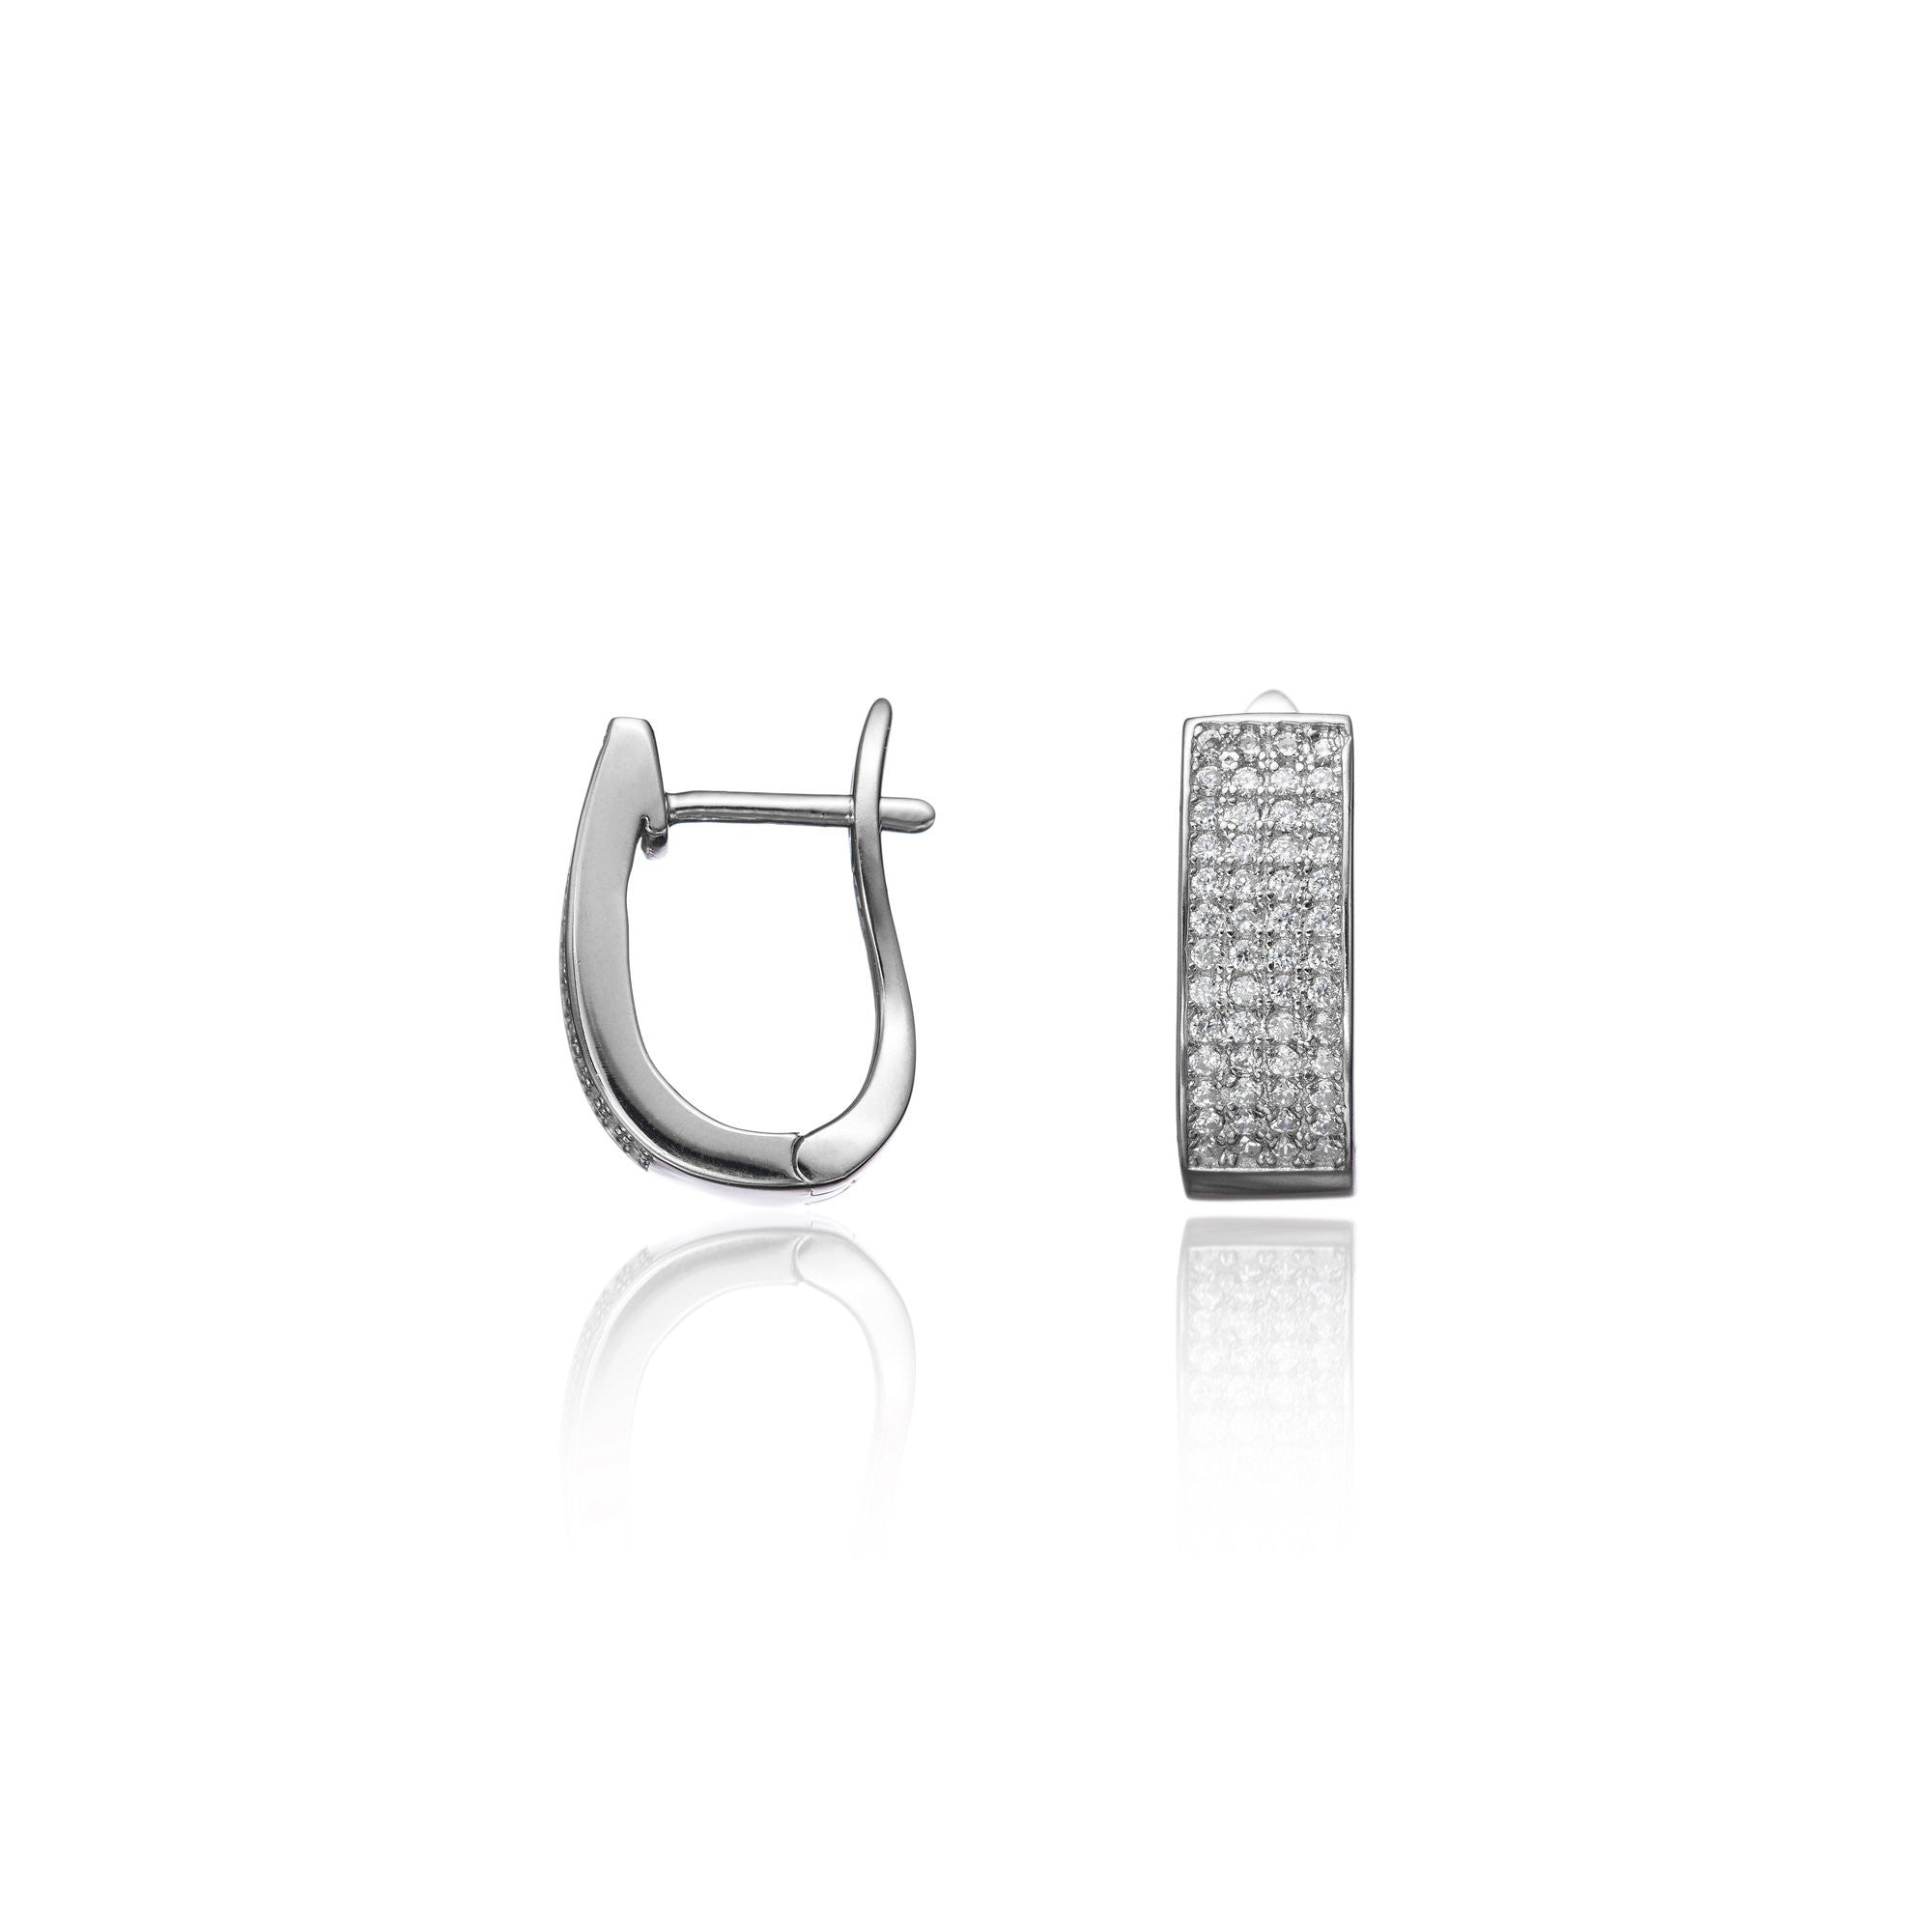 Lara Curved Hoop Earrings